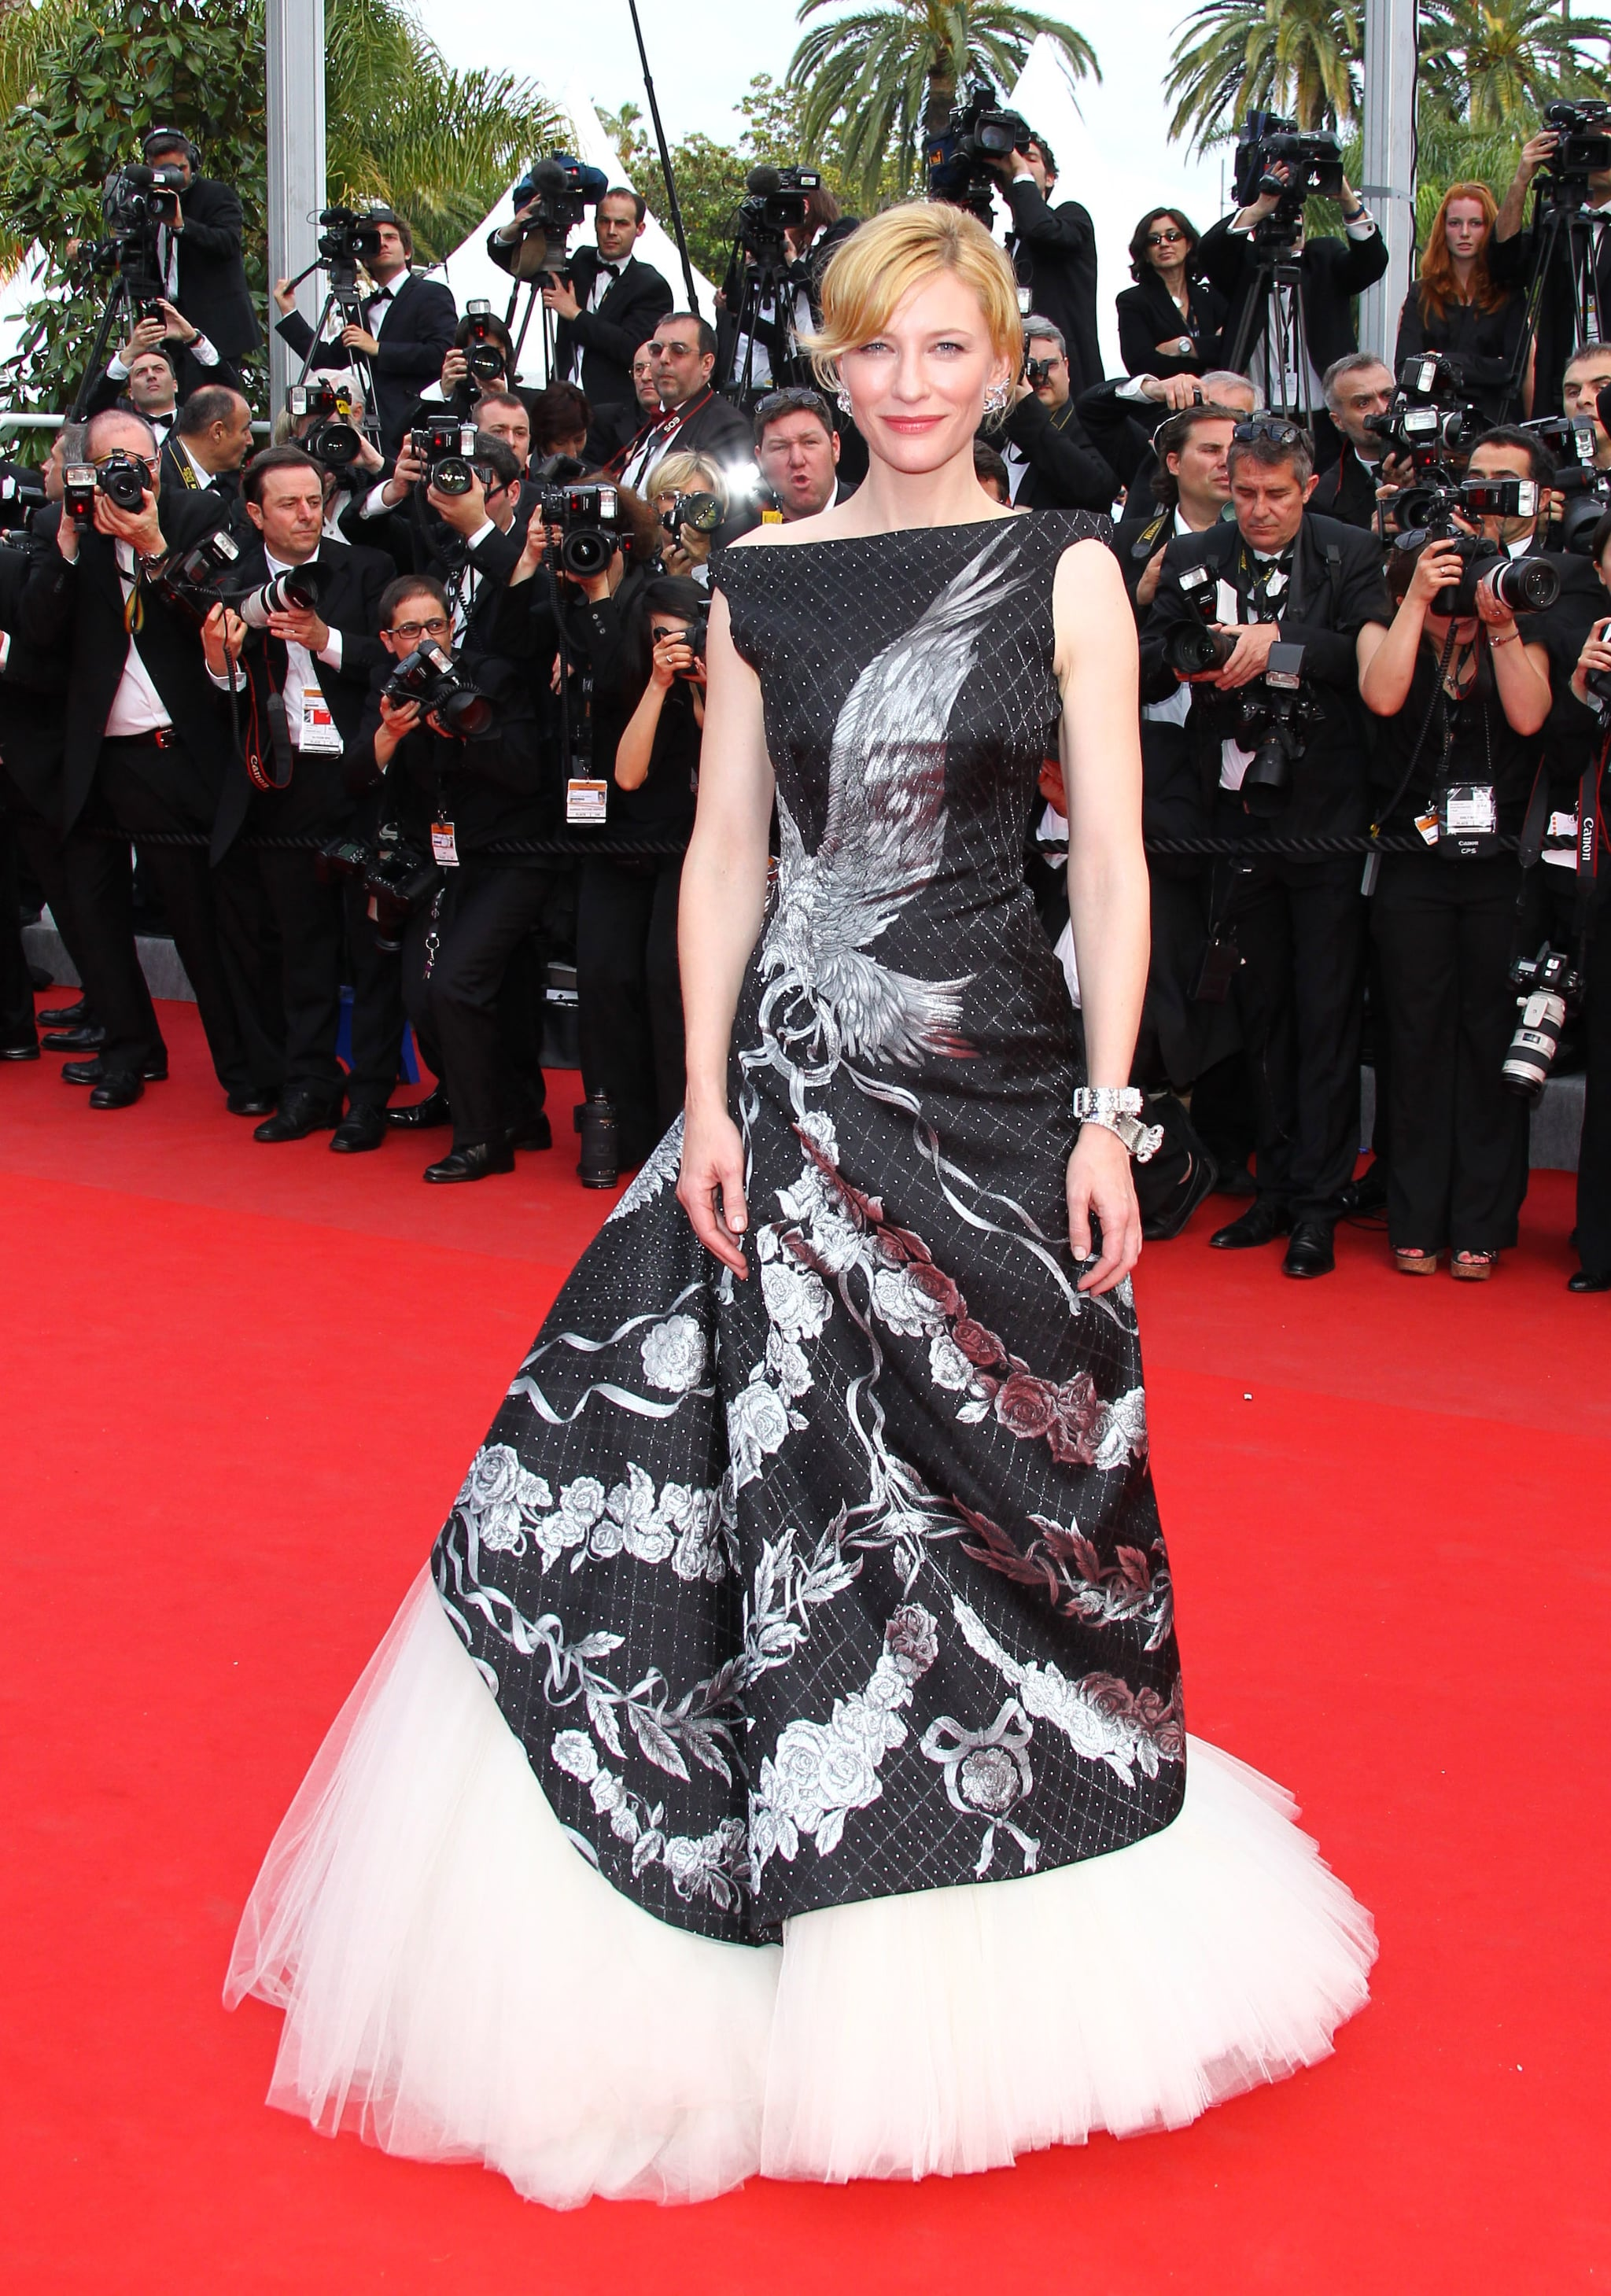 Cate Blanchett wore an Alexander McQueen gown at the Cannes premiere of Robin Hood in 2010.